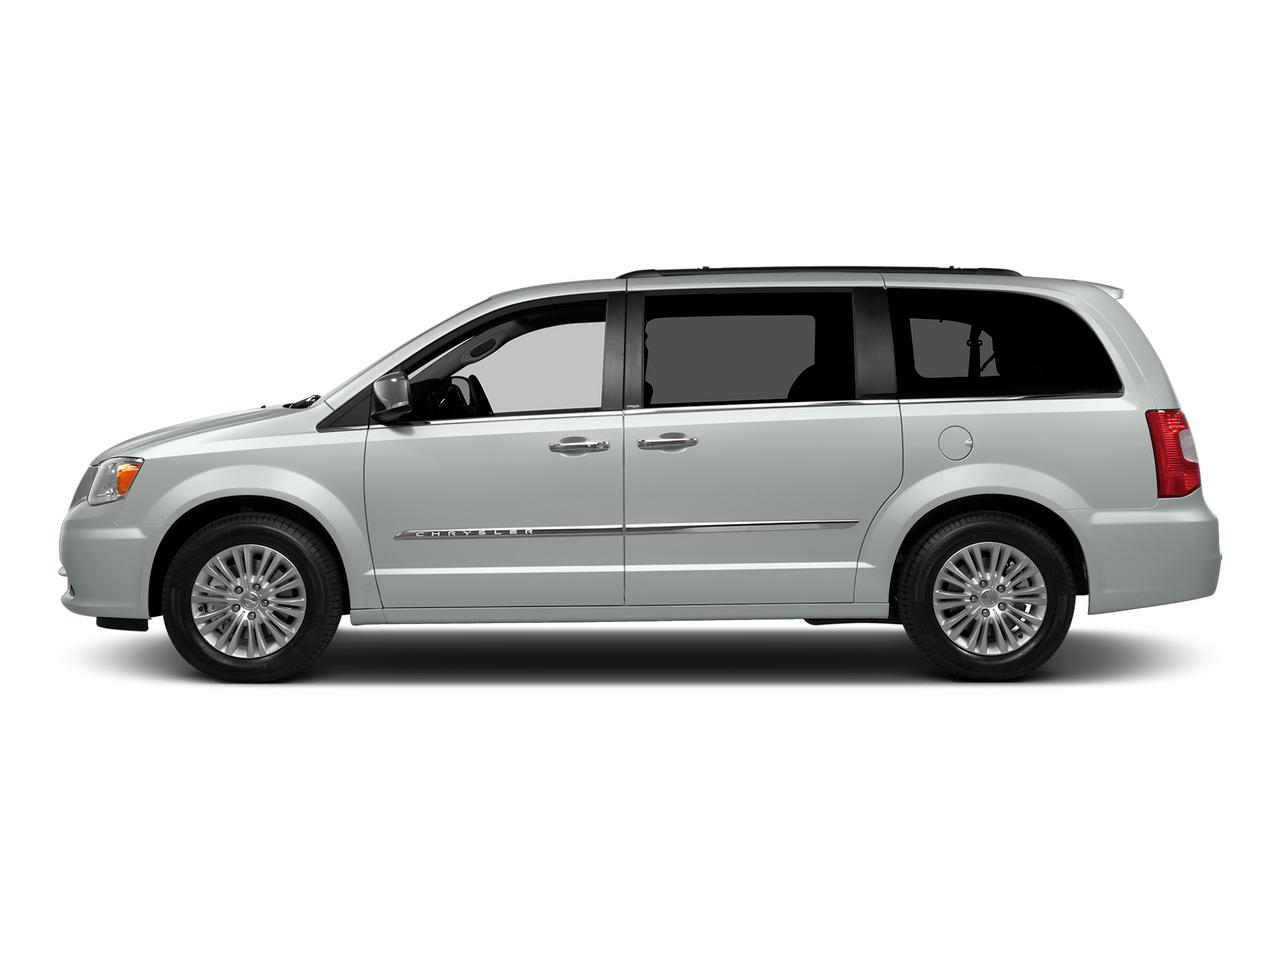 Used 2015 Chrysler Town & Country Limited Platinum with VIN 2C4RC1GG2FR547132 for sale in Park Rapids, Minnesota